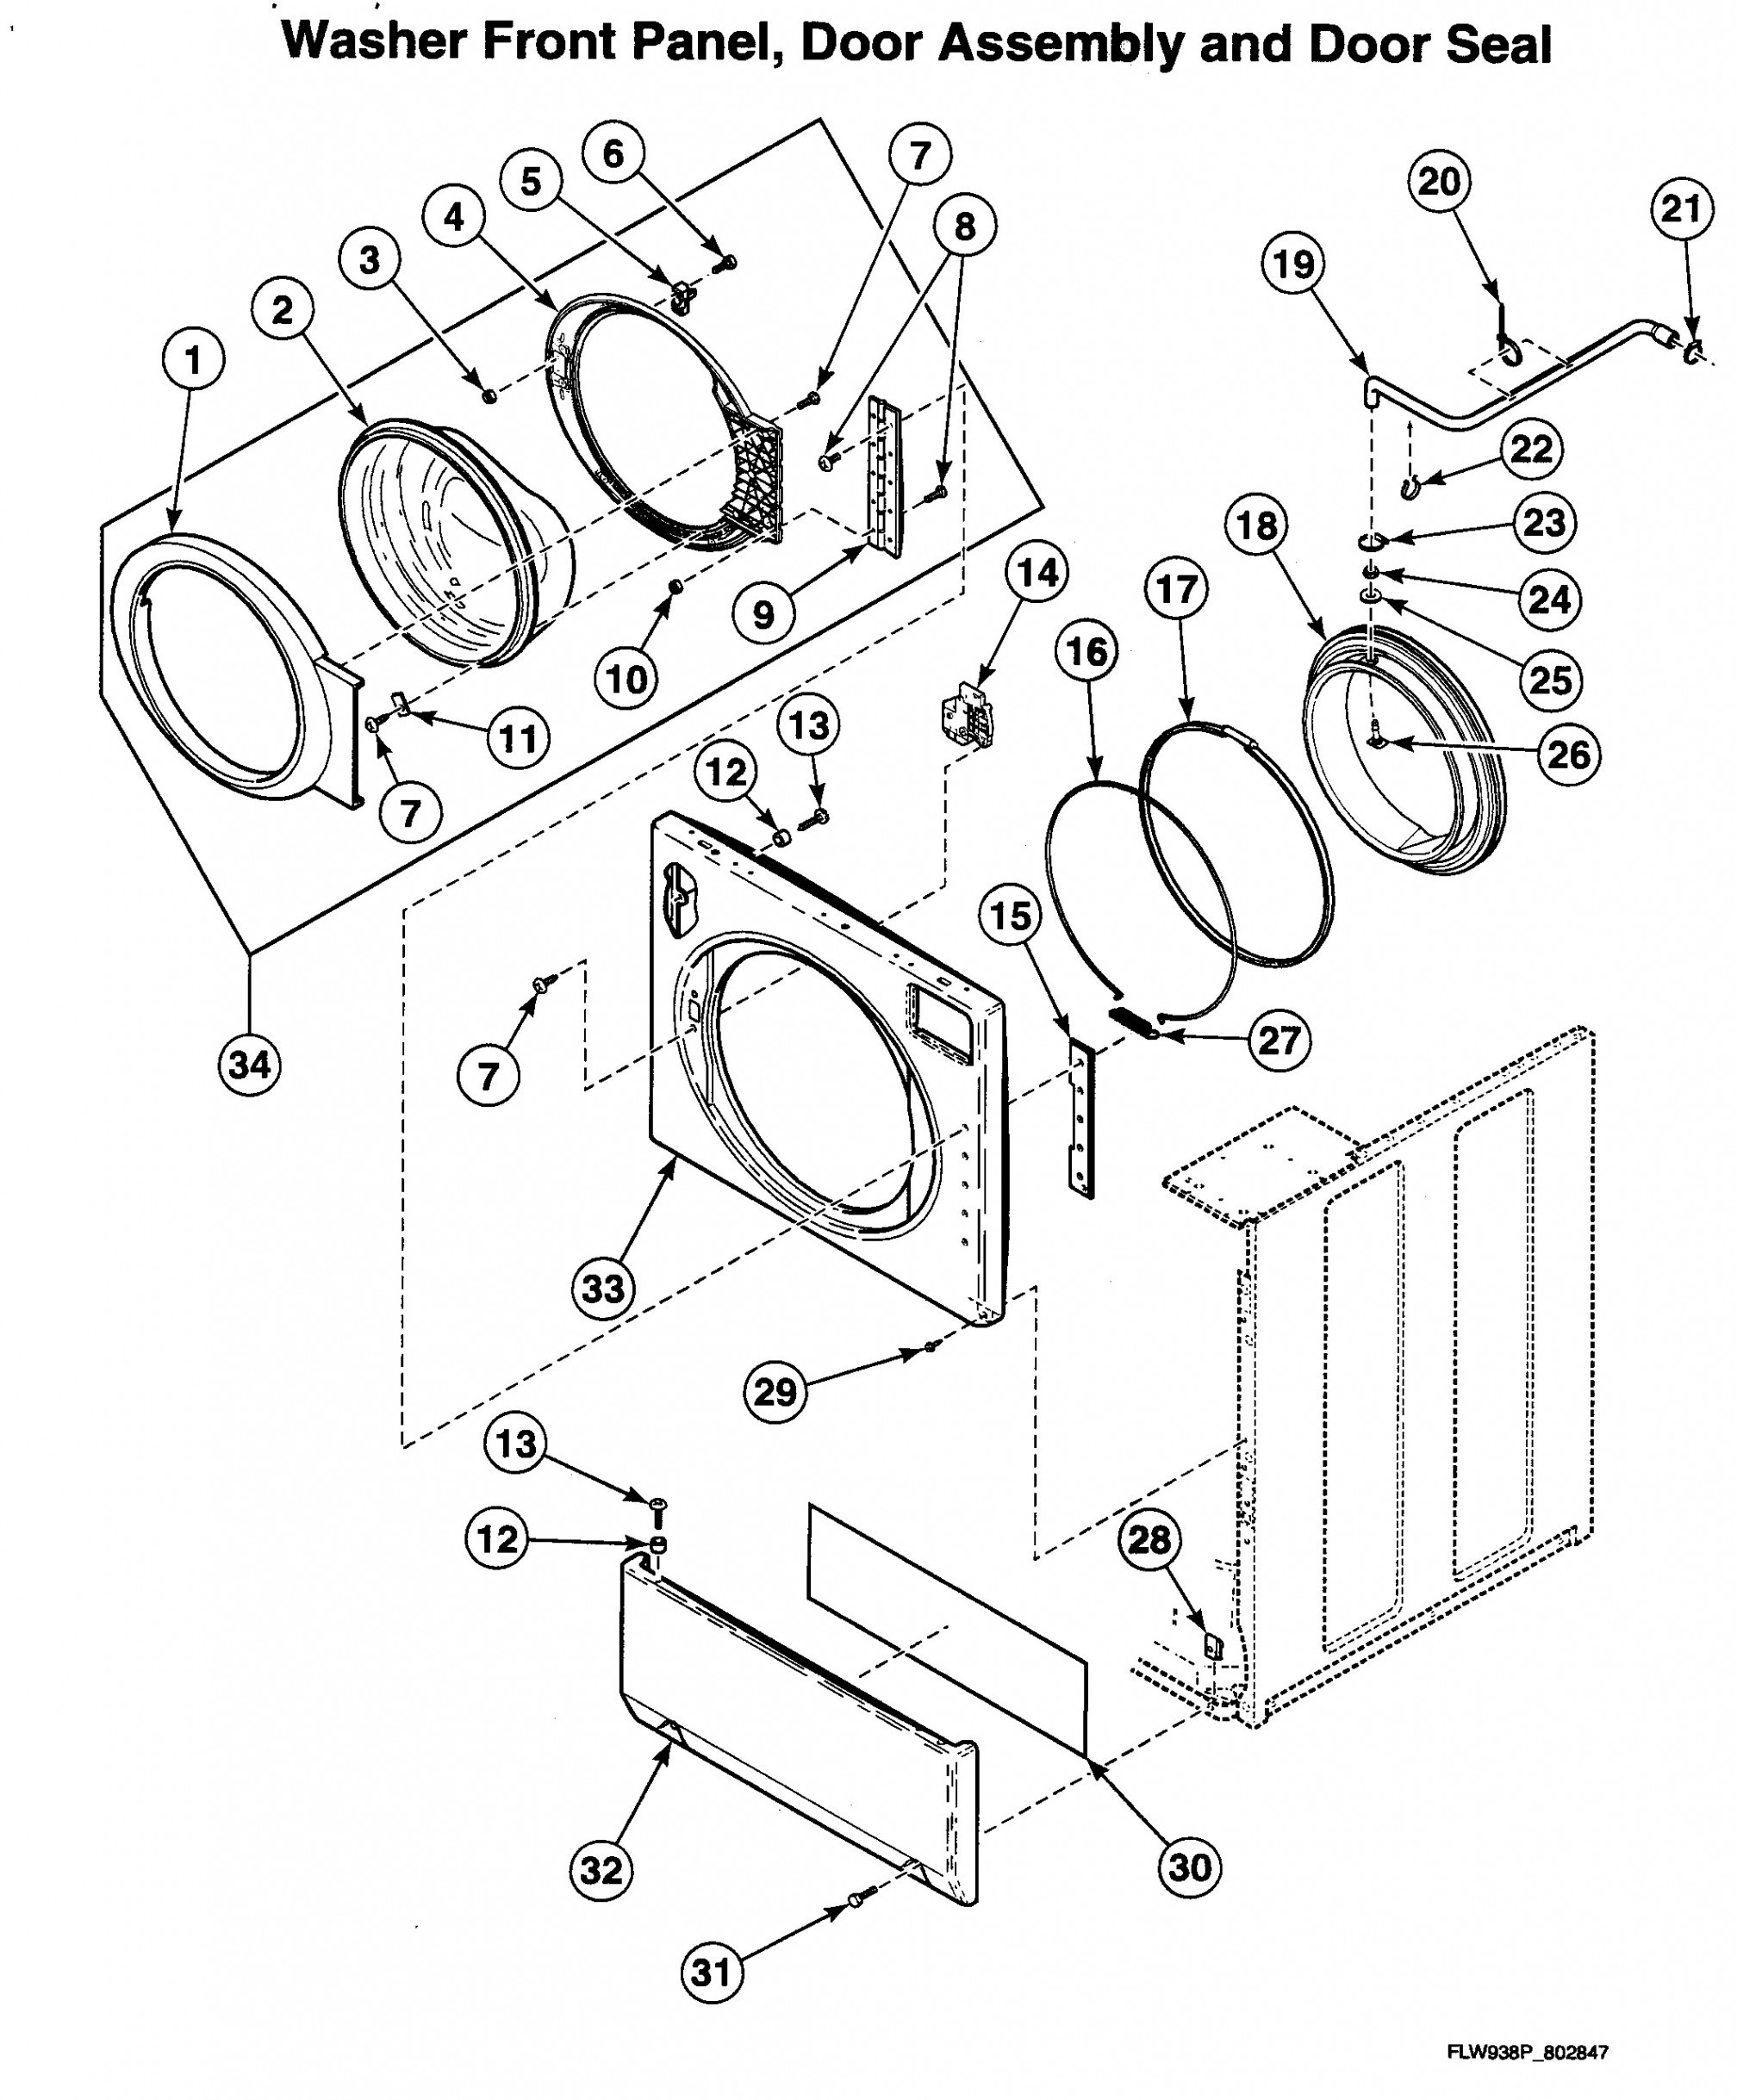 Toyota Corolla Parts Diagram